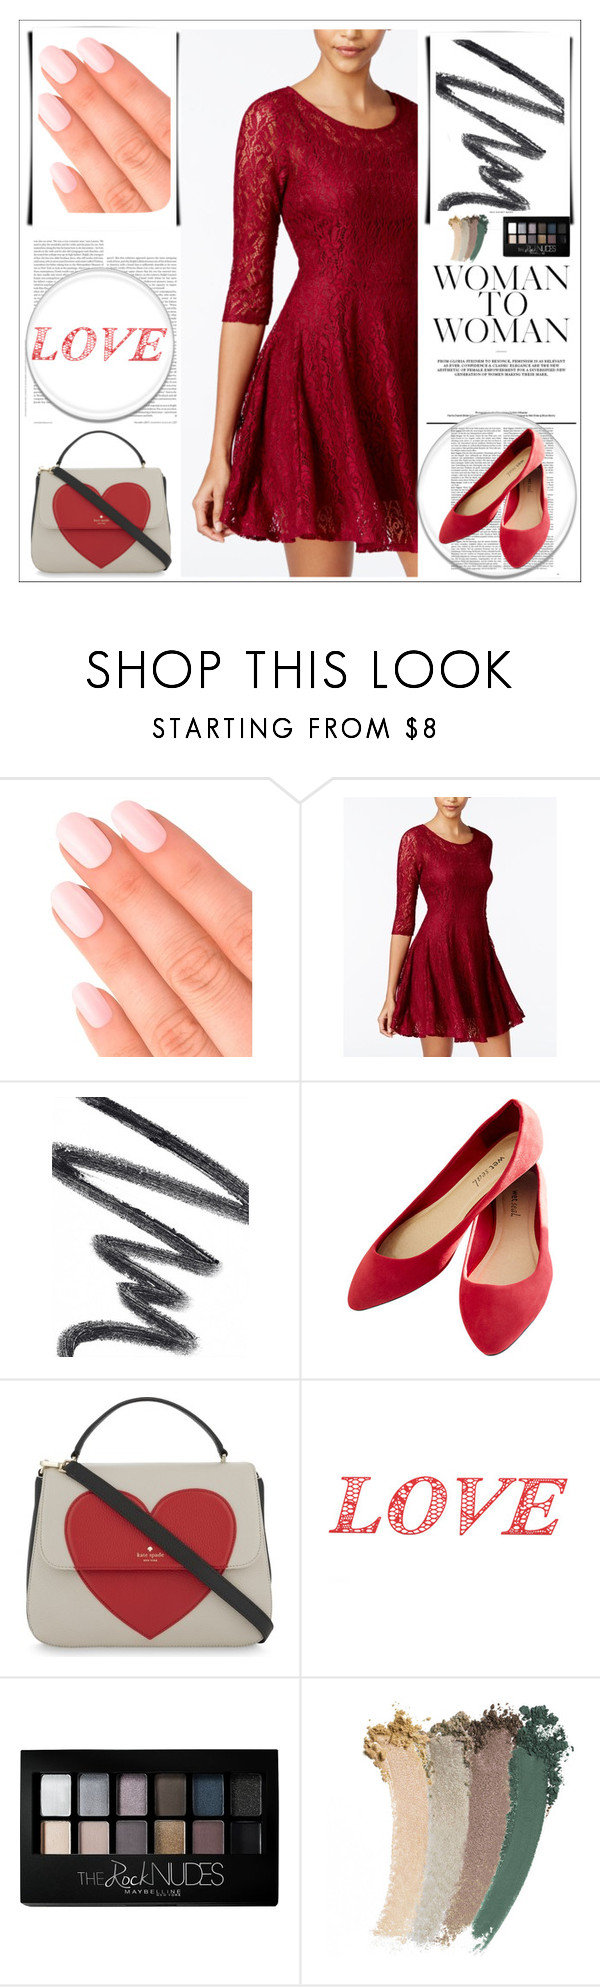 """""""Happy Valentine's Day!"""" by violinistkitty ❤ liked on Polyvore featuring Elegant Touch, Fishbowl, Chantecaille, Wet Seal, Kate Spade, WALL, Maybelline, Gucci and BeMyValentine"""